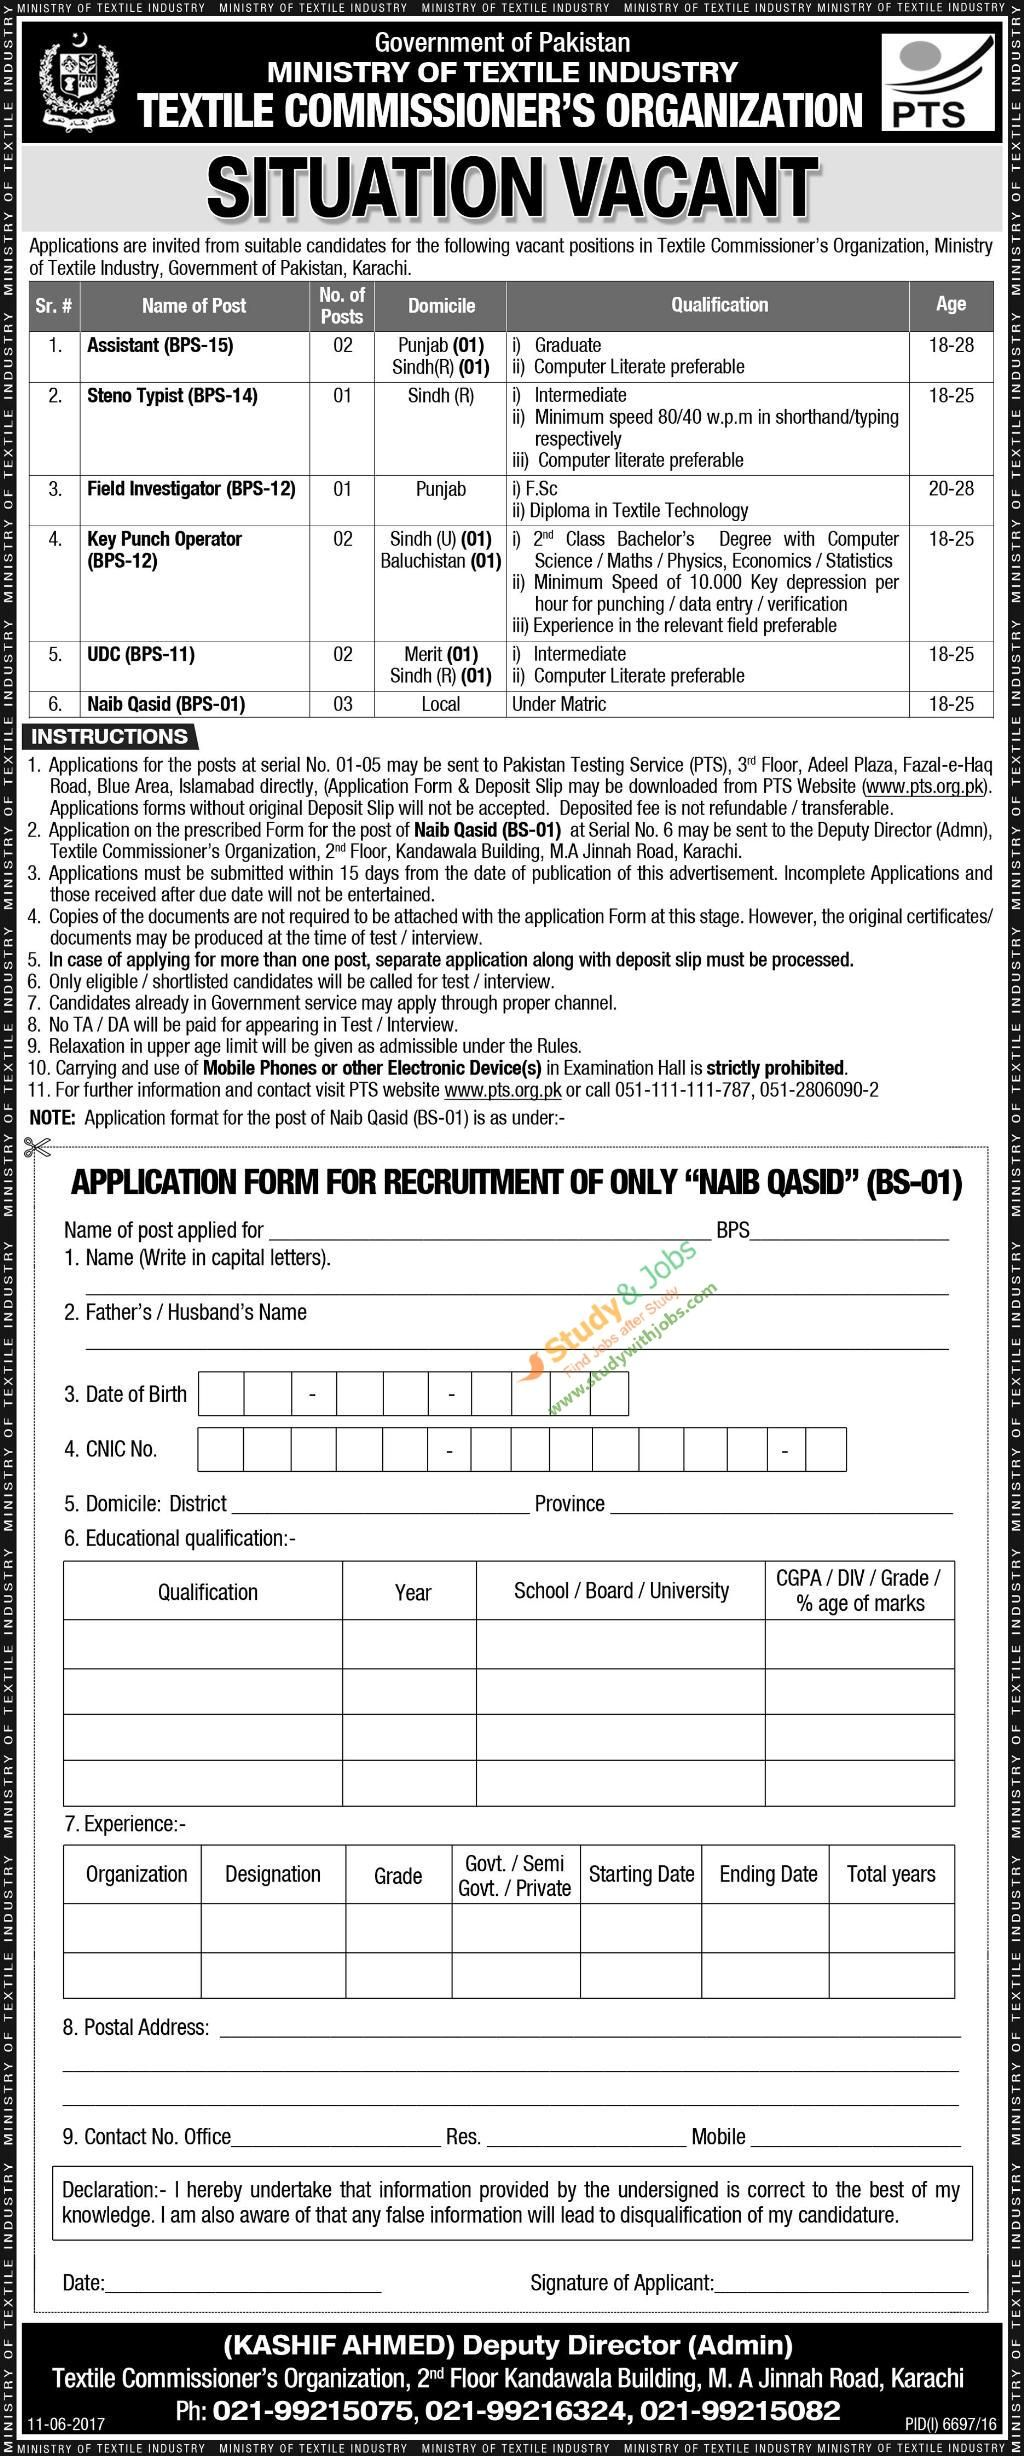 Vacancies In Textile CommissionerS Organization Application Form